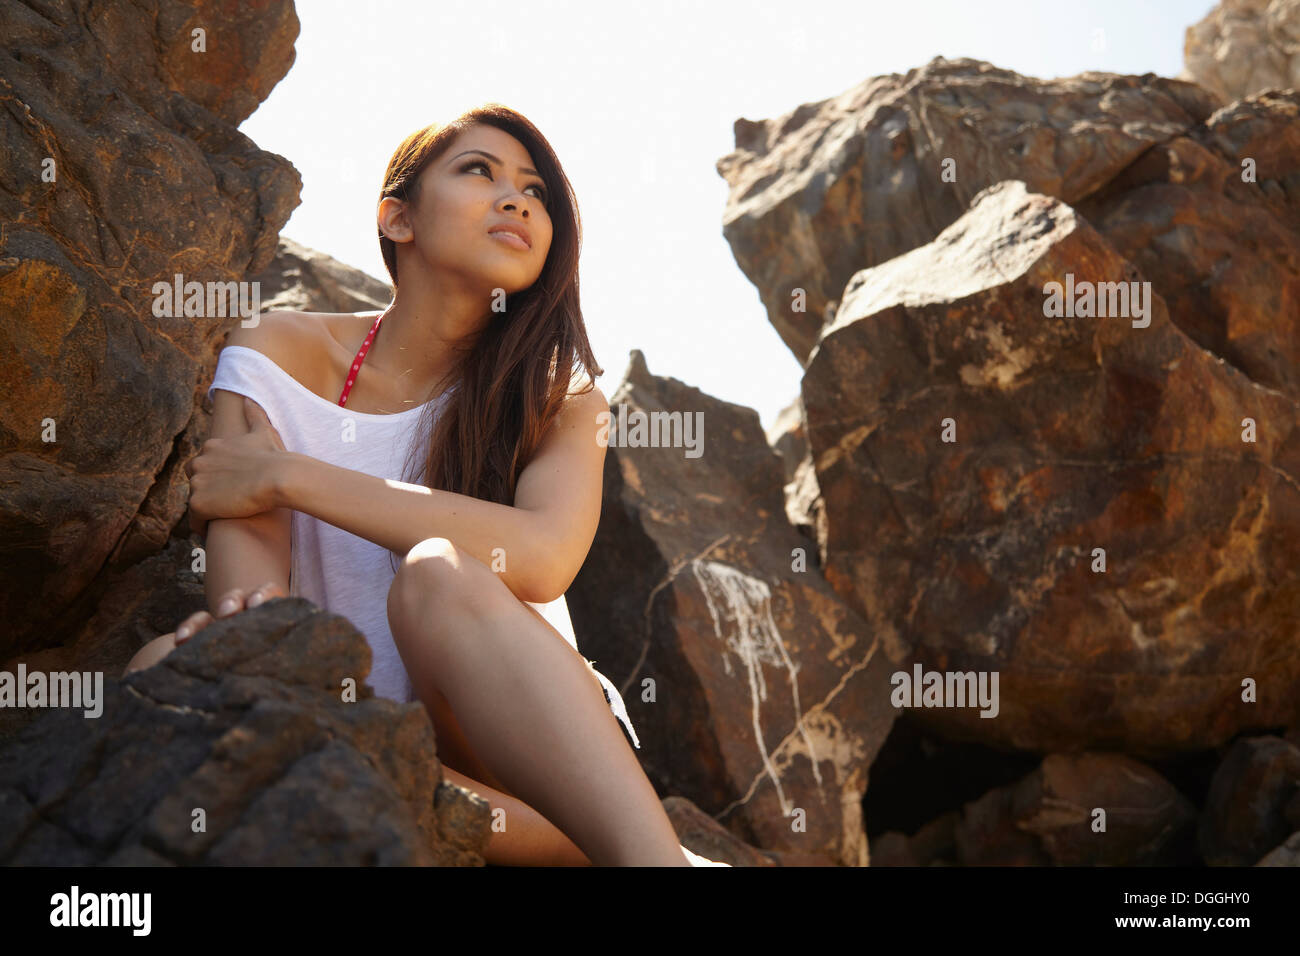 Young woman in rocky shade, Palos Verdes, California, USA - Stock Image